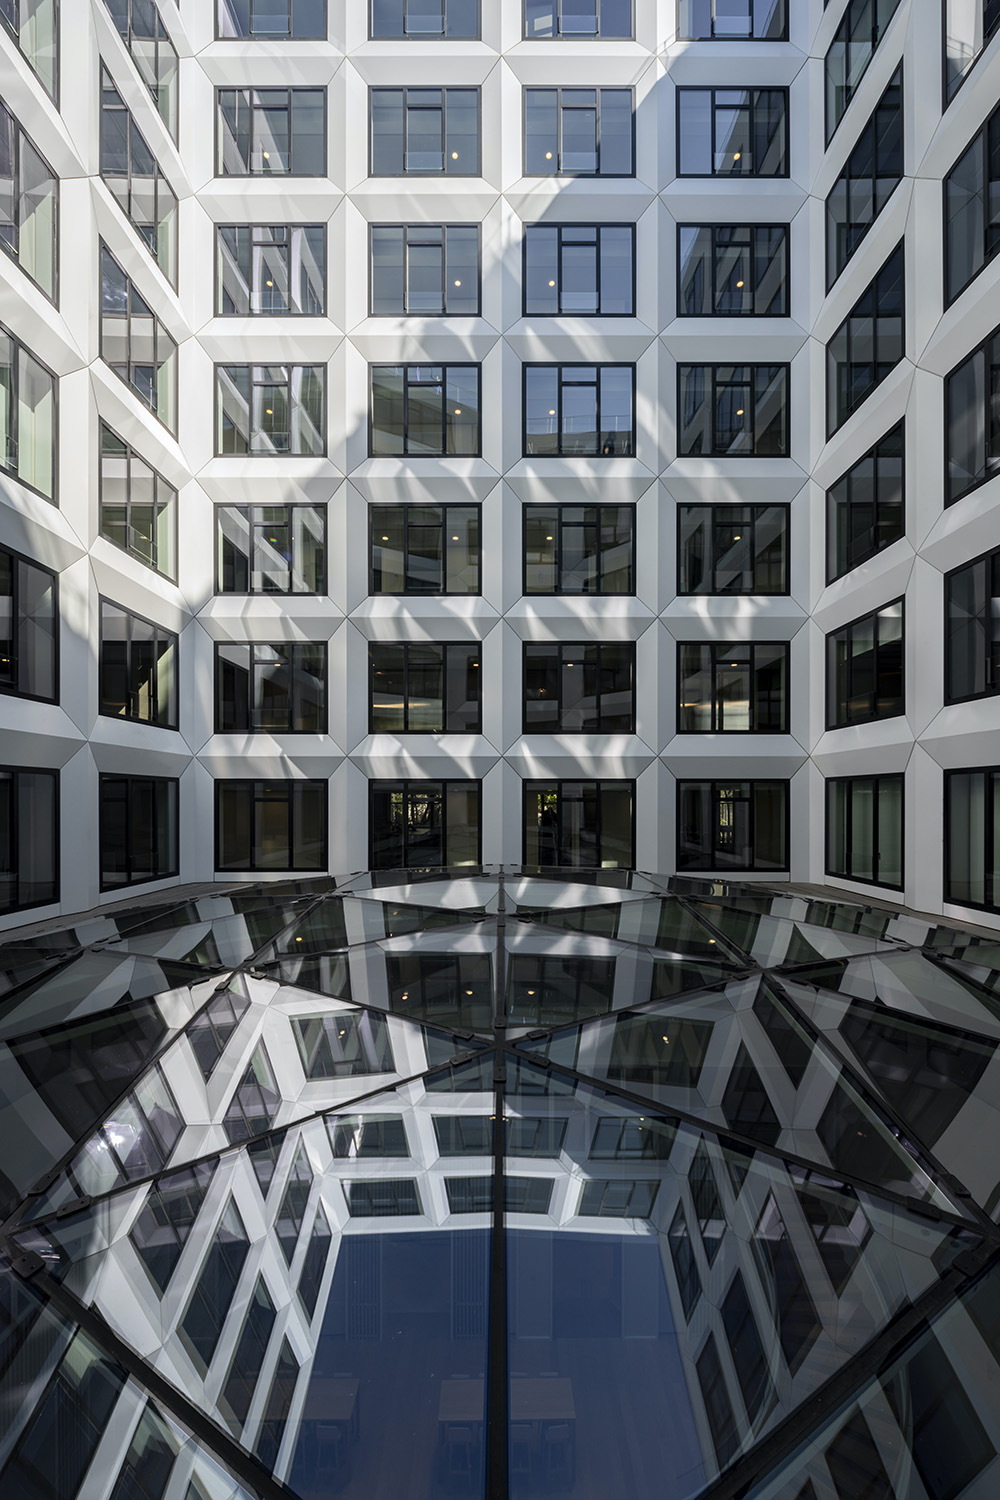 The interior spaces are very bright thanks to a white and glazed facade on the patio. ©SALEM MOSTEFAOUI FOR PCA-STREAM